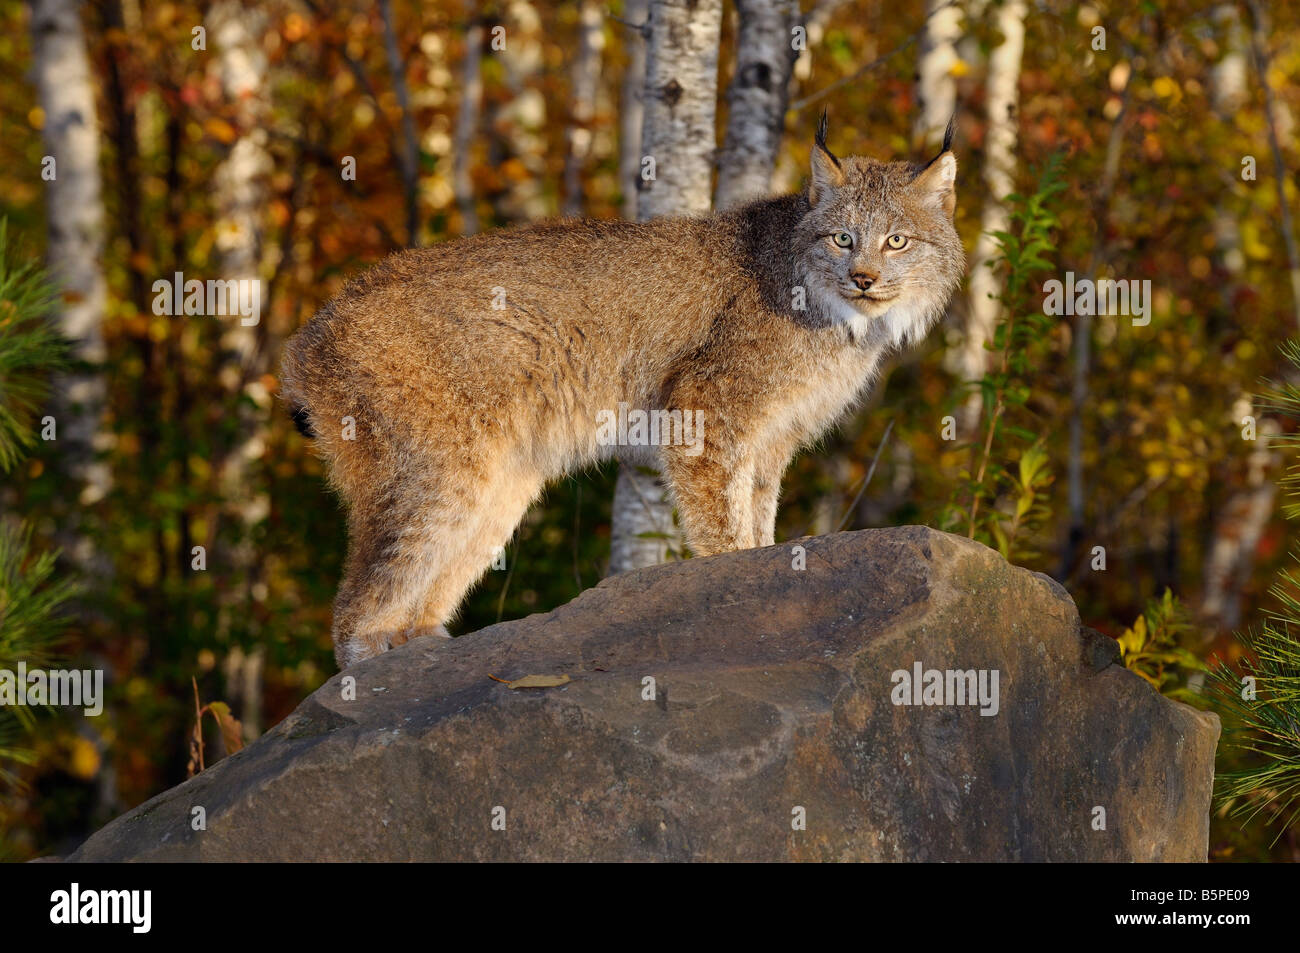 Canadian Lynx standing on a rock in a birch forest in Autumn at sunrise - Stock Image